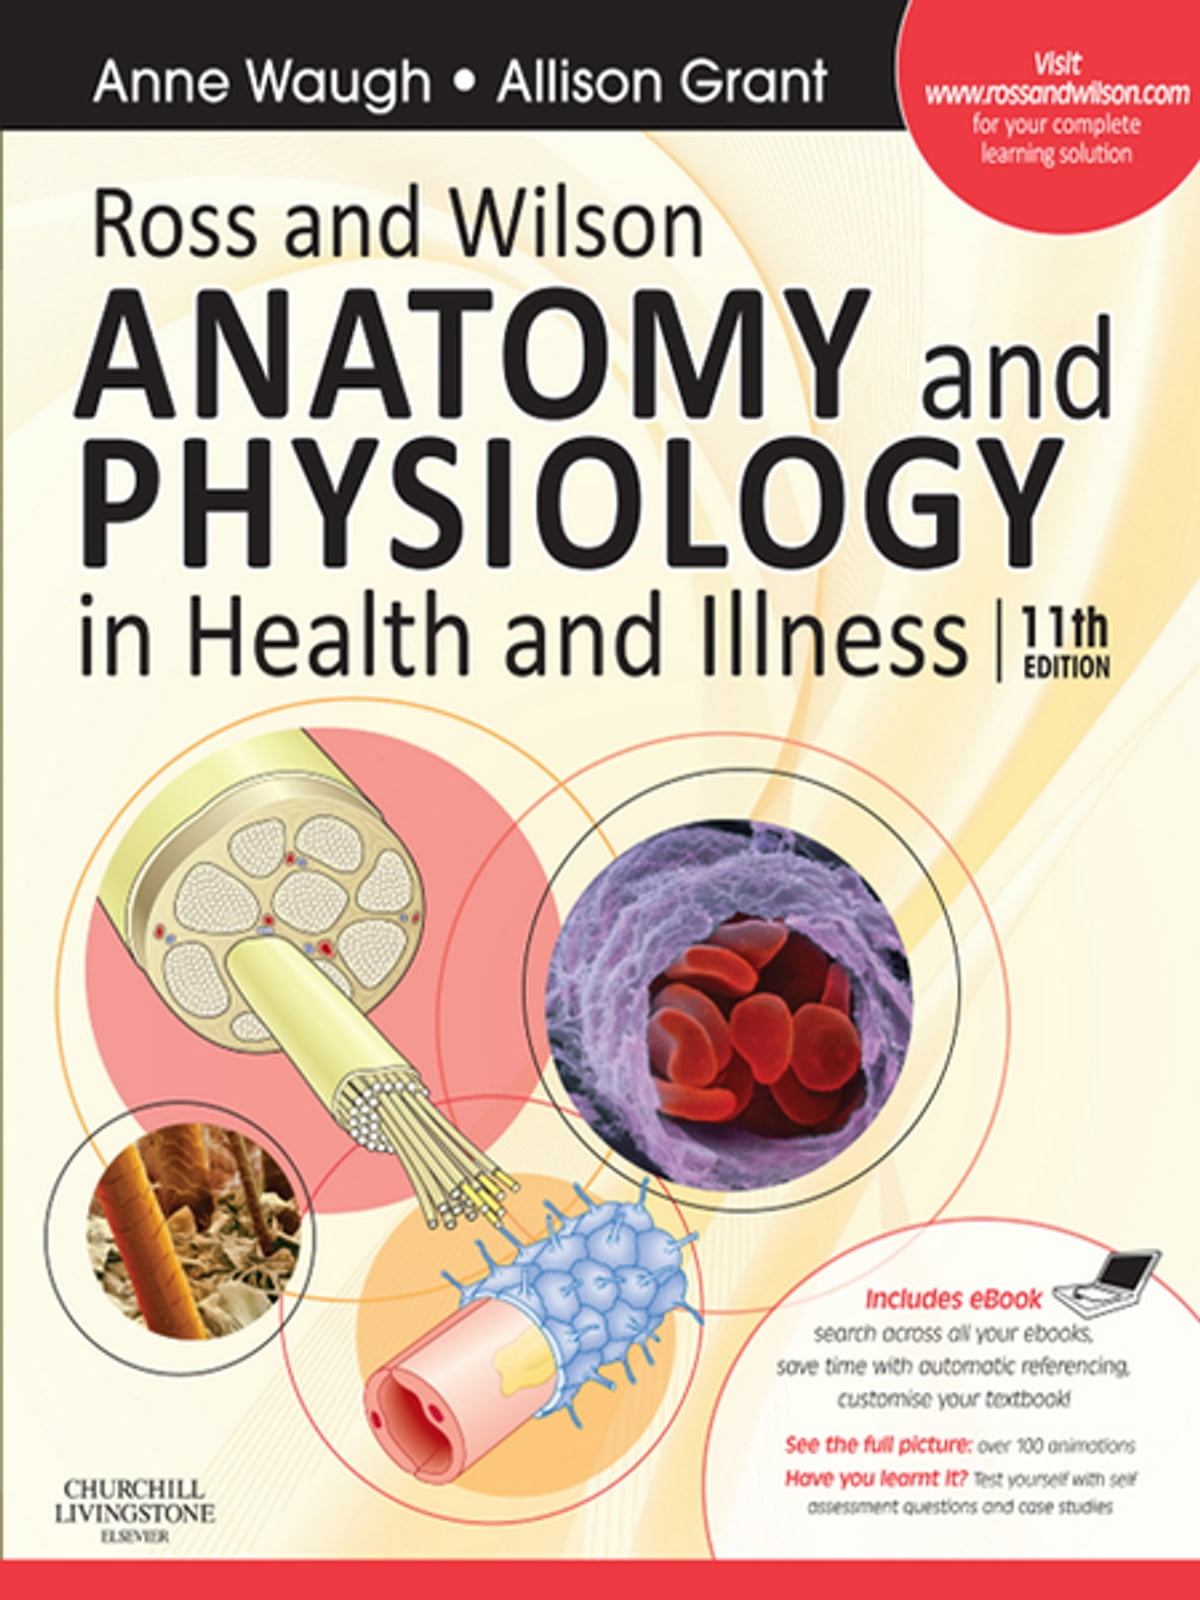 Ross & Wilson Anatomy and Physiology in Health and Illness E-Book ...